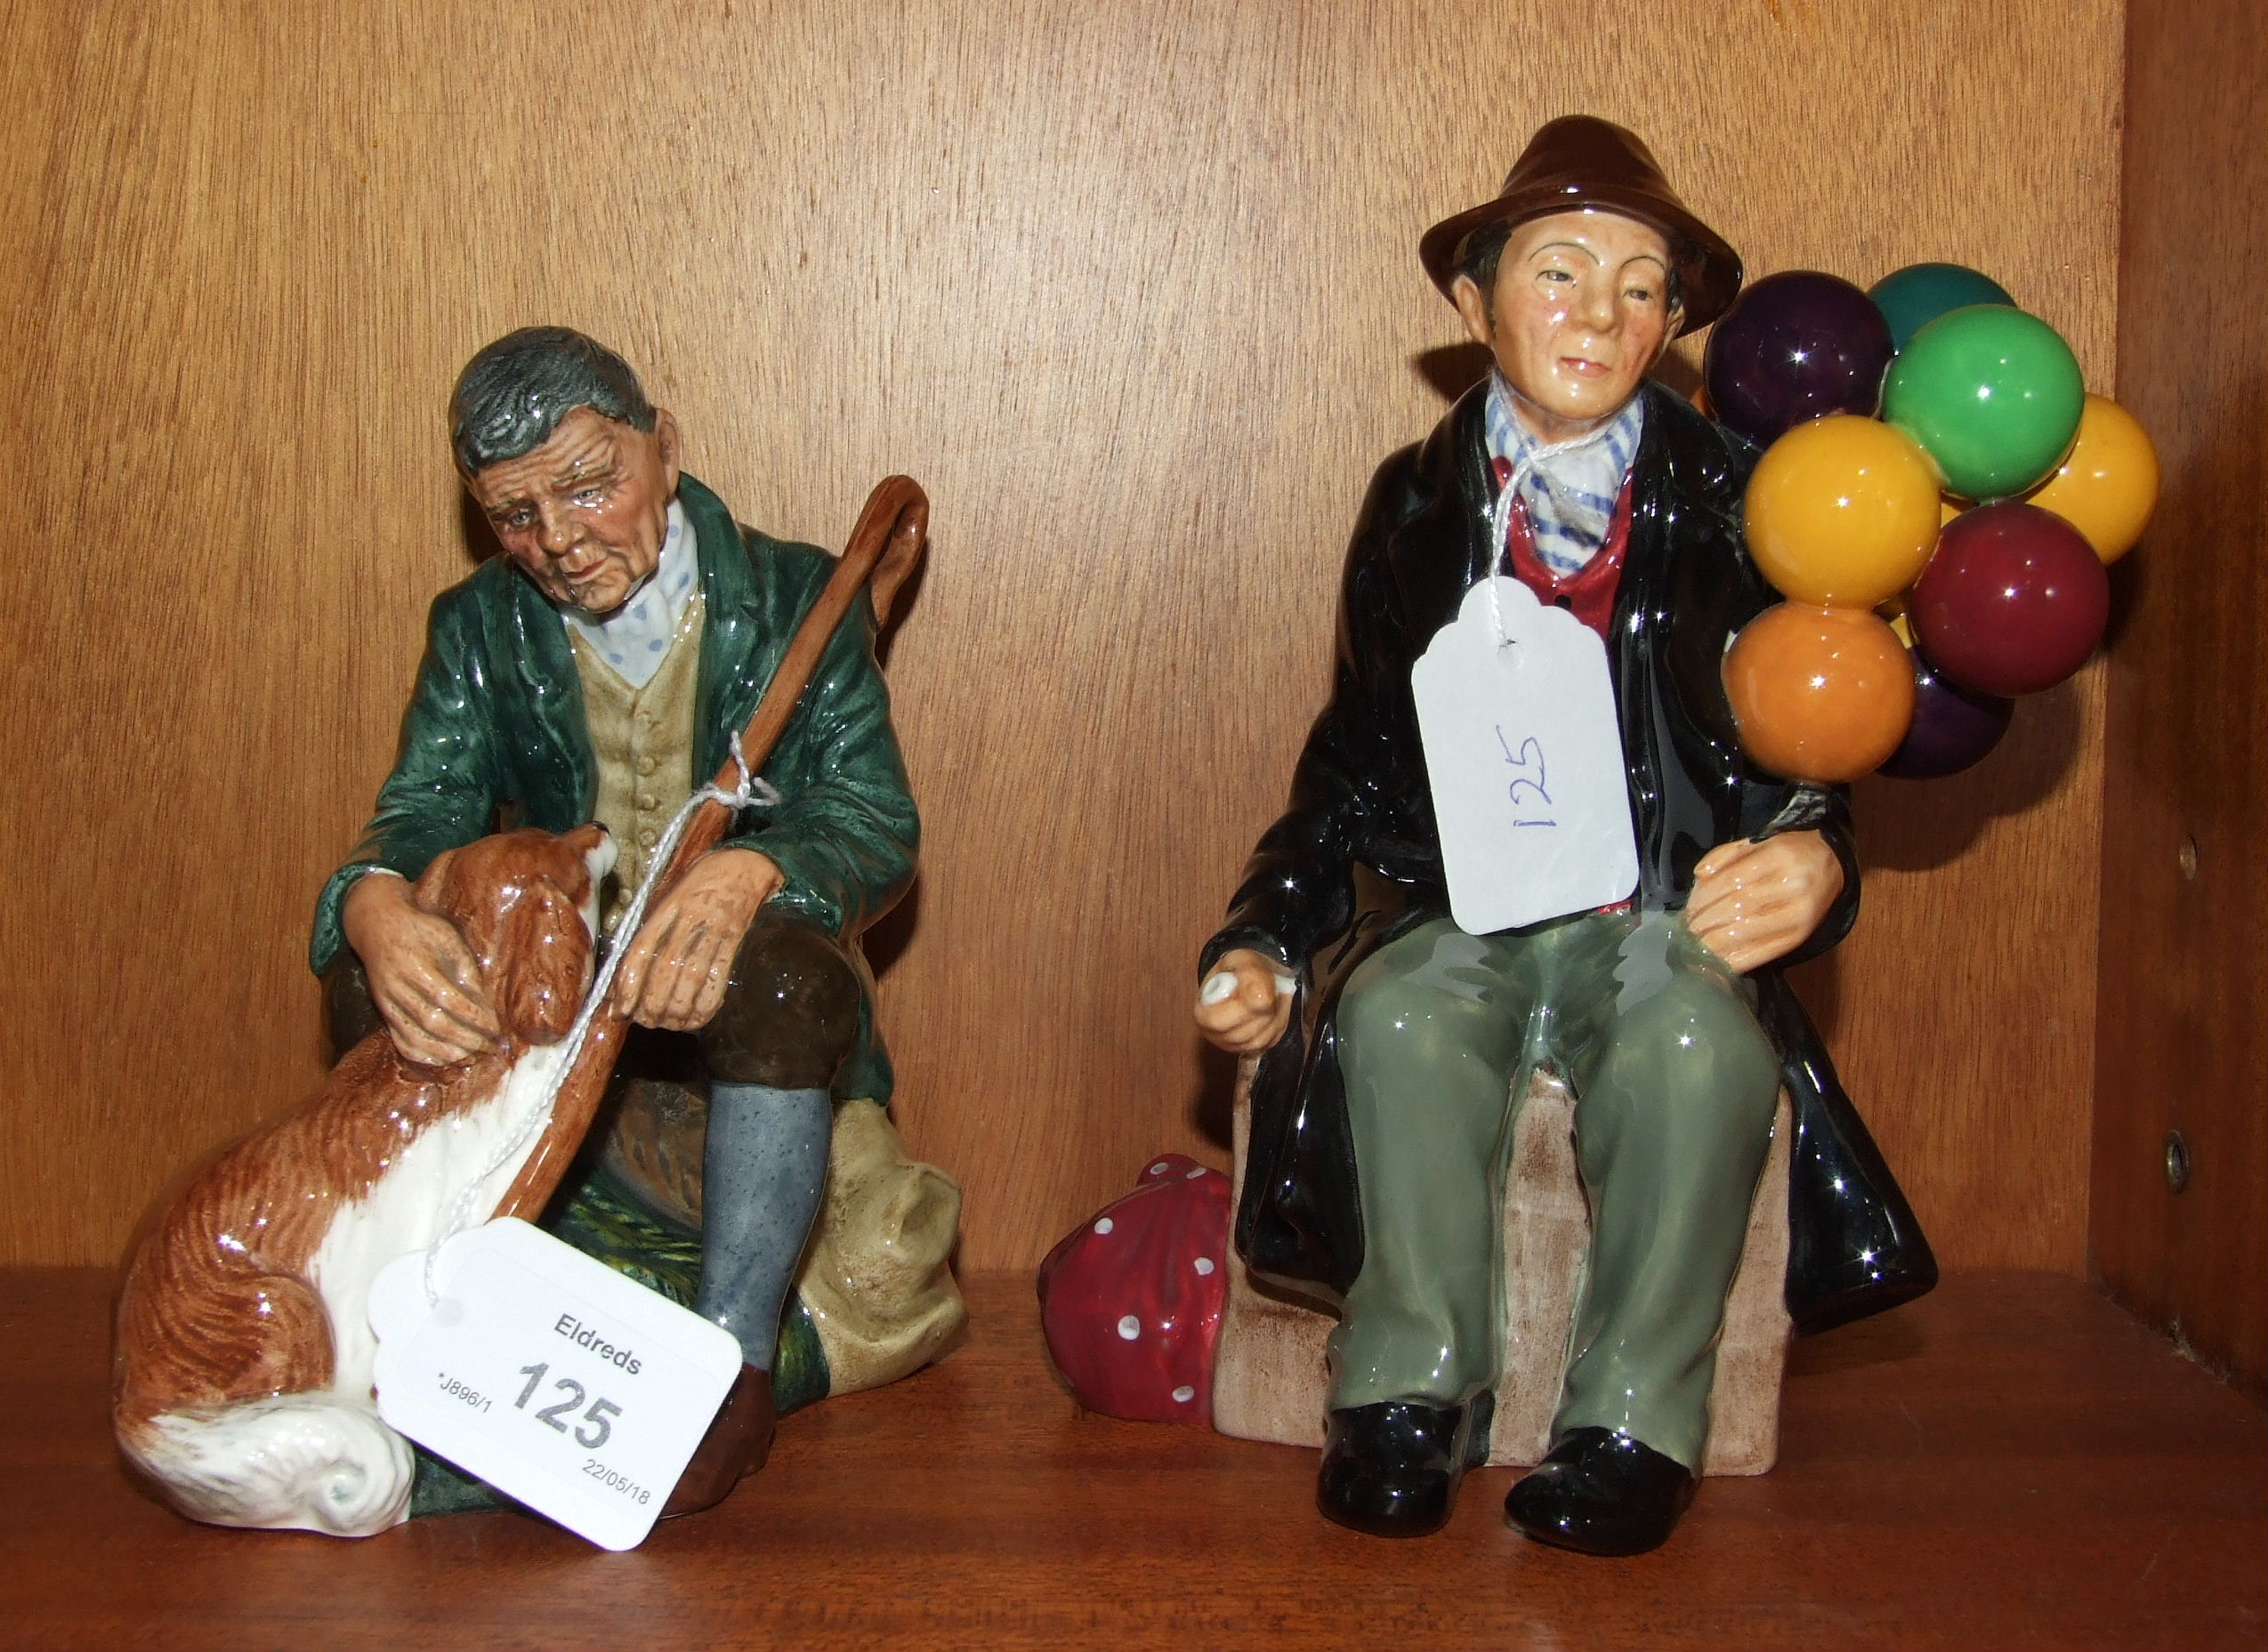 Lot 125 - Two Royal Doulton figures, 'The Balloon Man' HN1954, 20cm and 'The Master' HN2325, 17.5cm, (2).